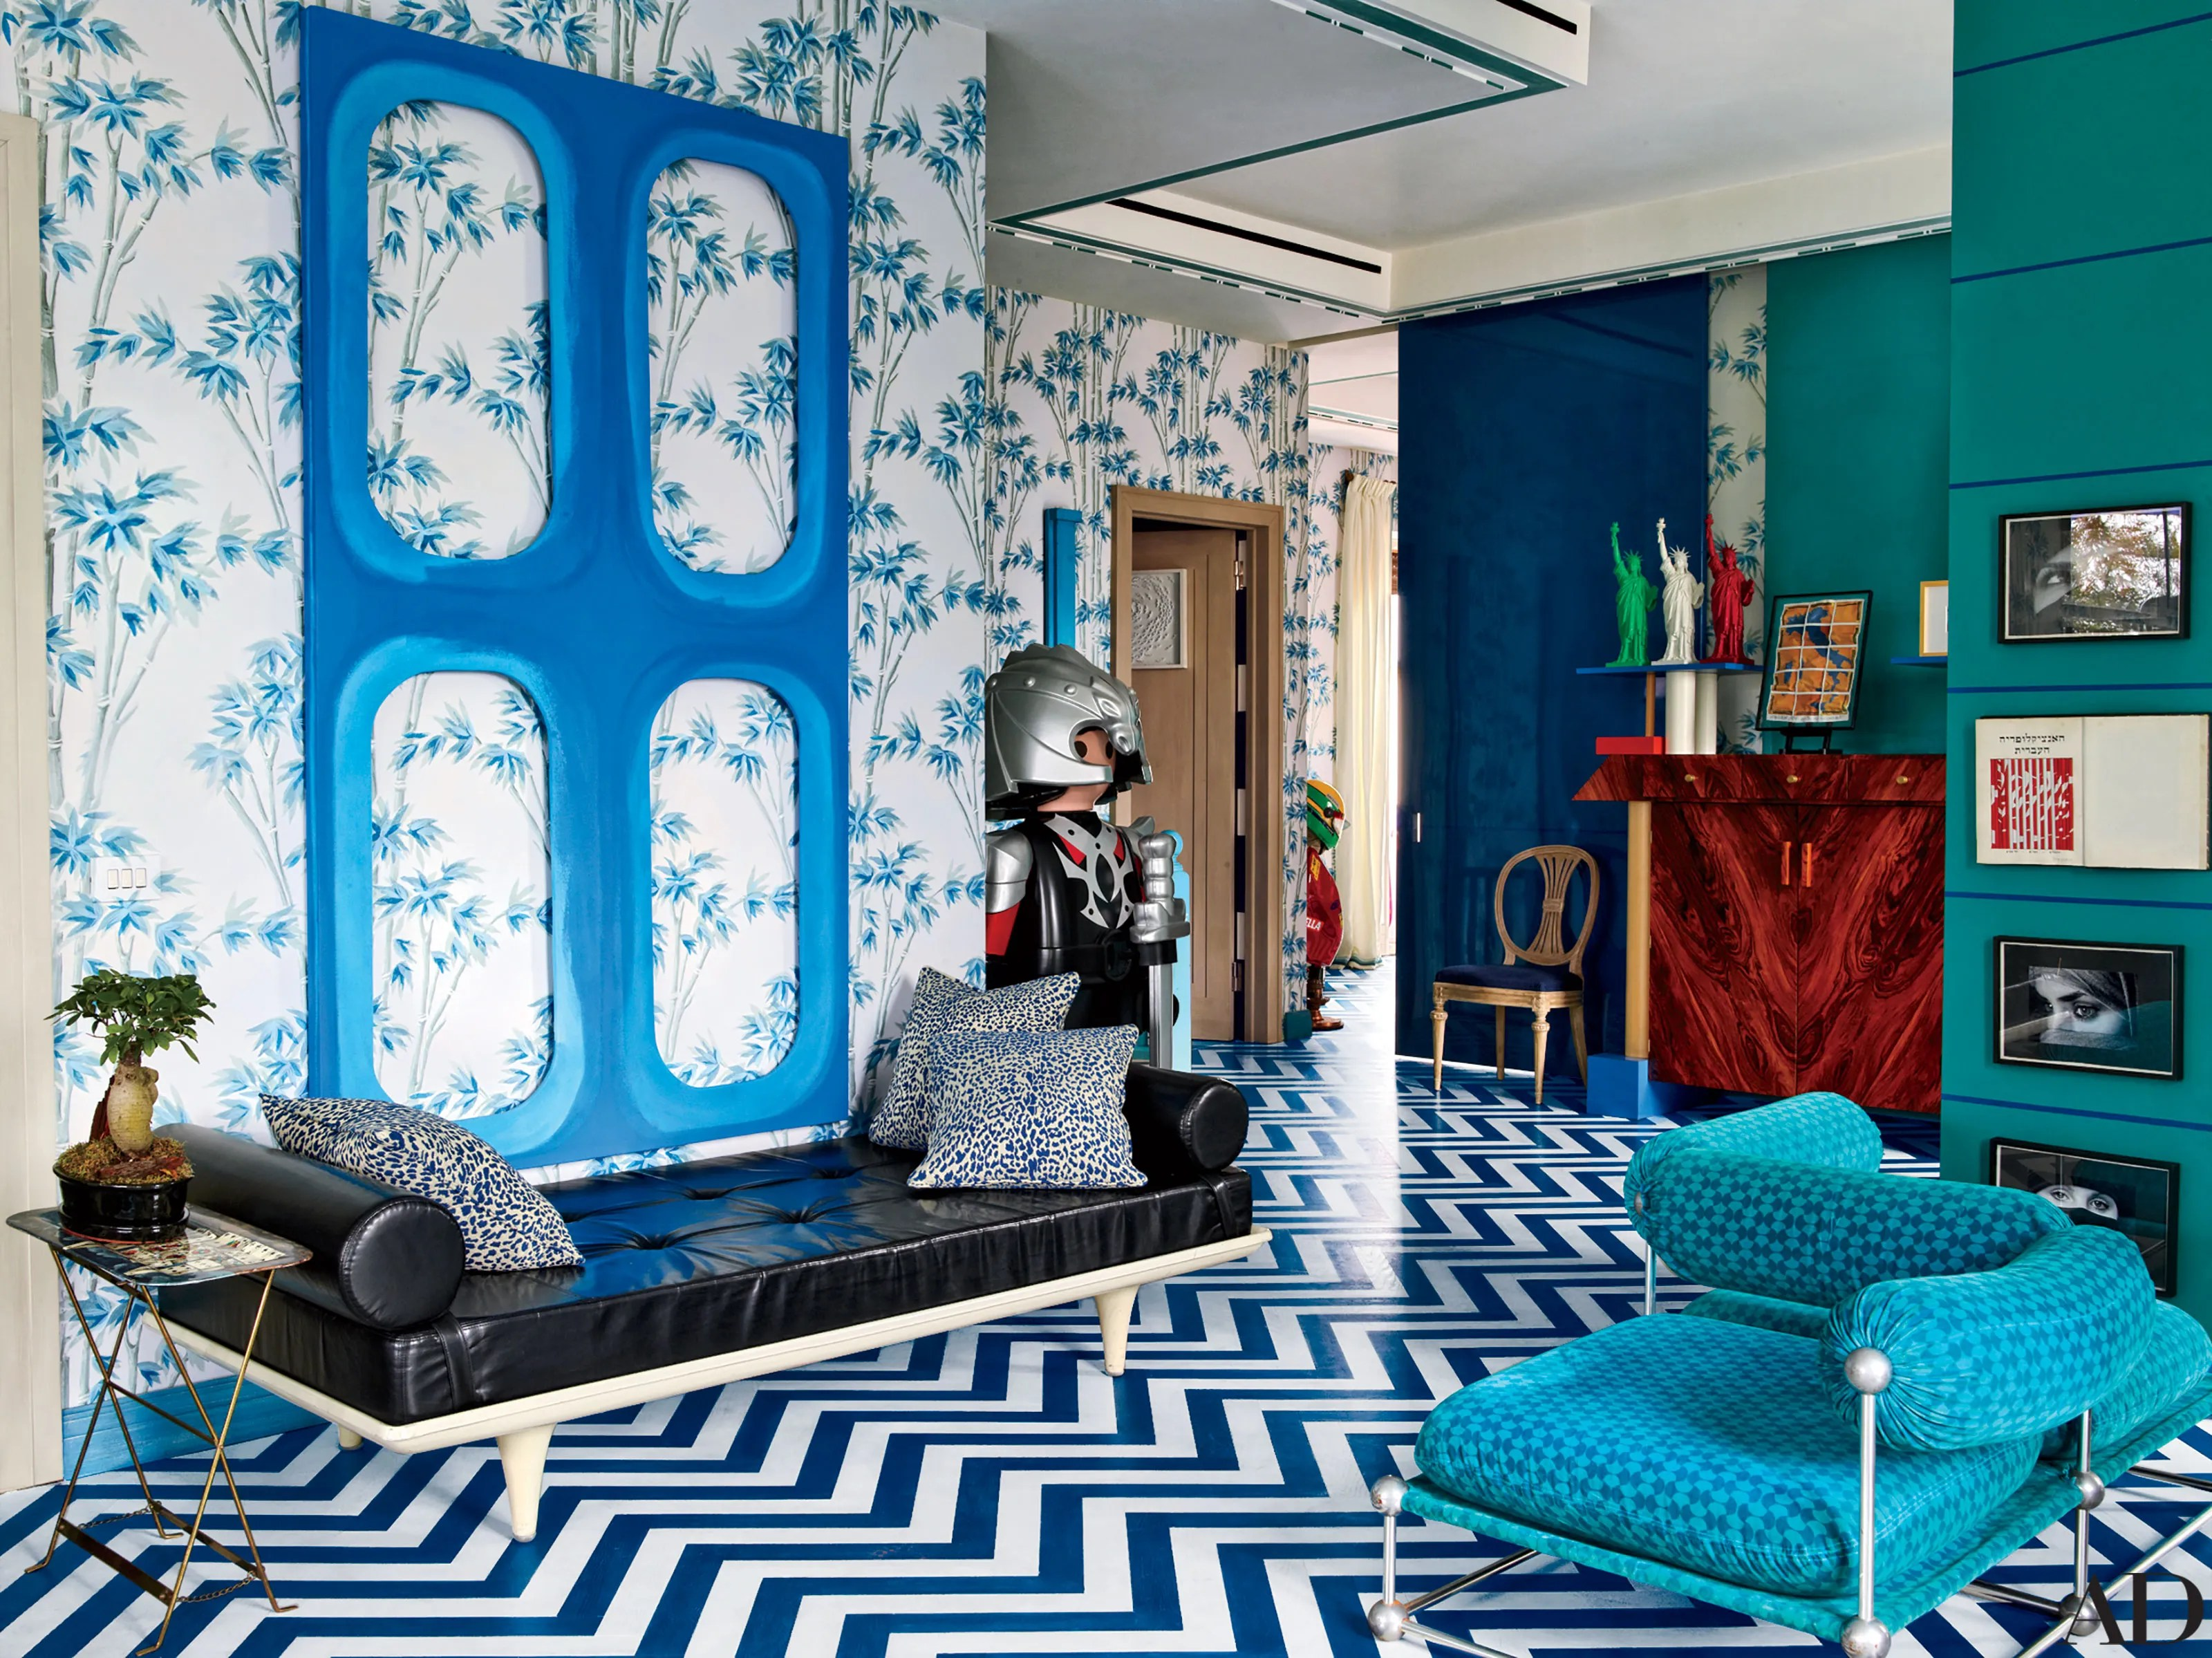 Teal Pictures Bedroom 30 Rooms That Showcase Blue And White Decor Architectural Digest